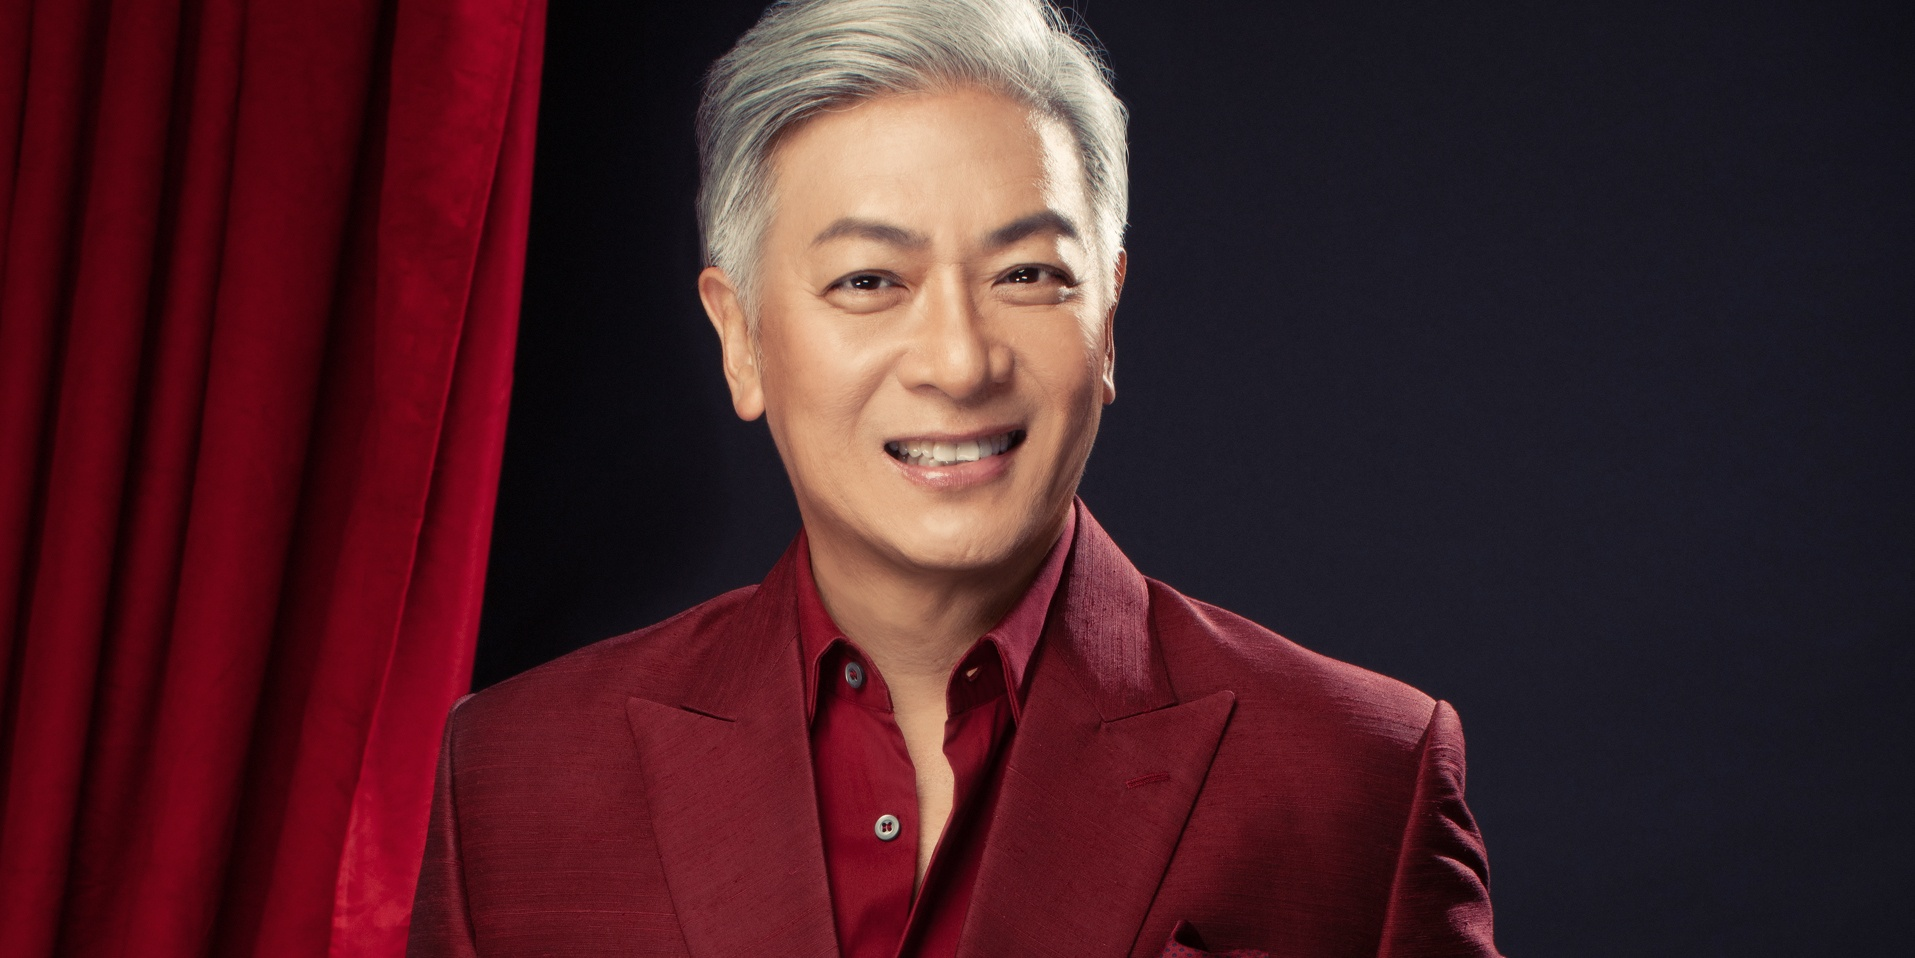 Catch the best of Dick Lee's musical works at SINGAPOPERA